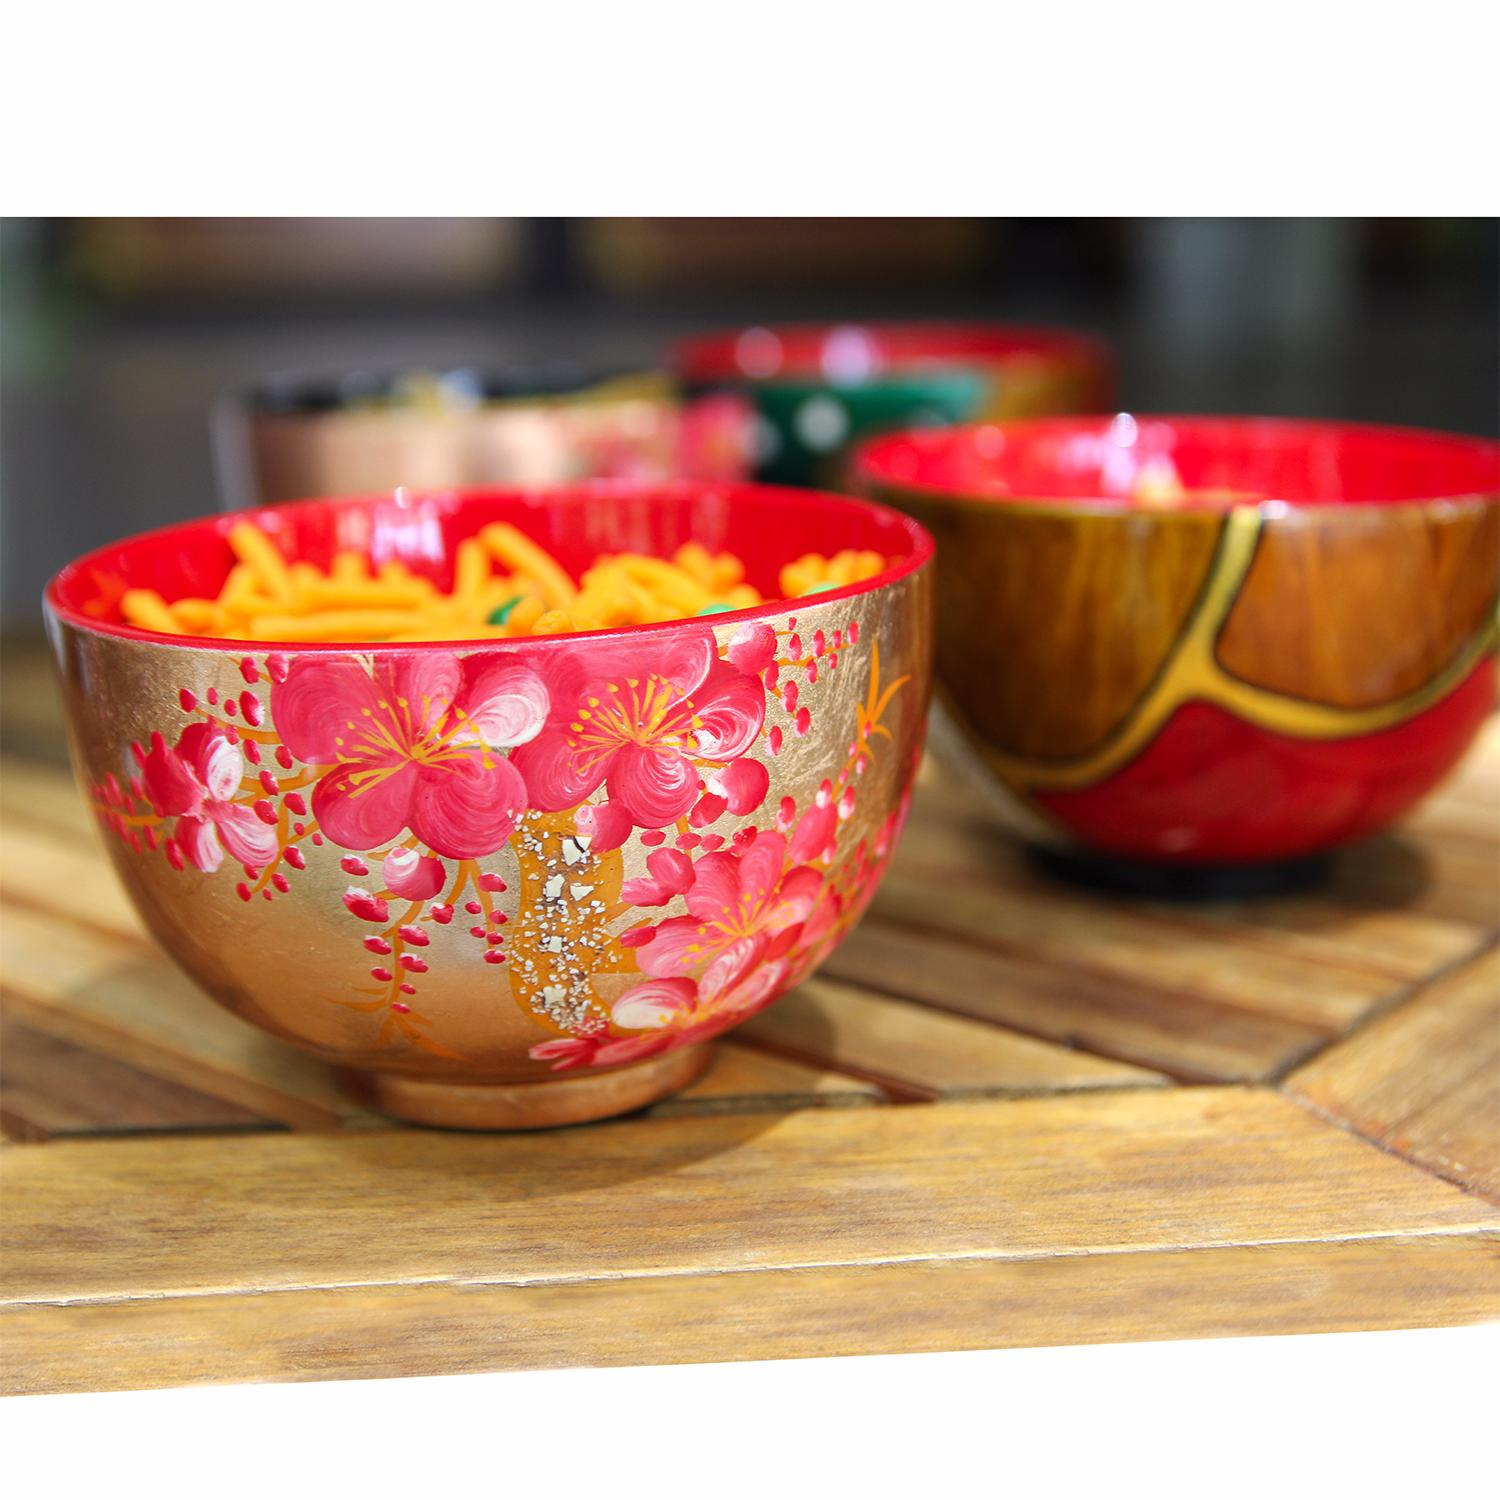 VIETNAM TOP HOT SALE HIGH QUALITY LACQUER BOWLS BEST PRICE FROM FACTORY WOODEN BOWL_DONG PHUONG + 84 979 153366